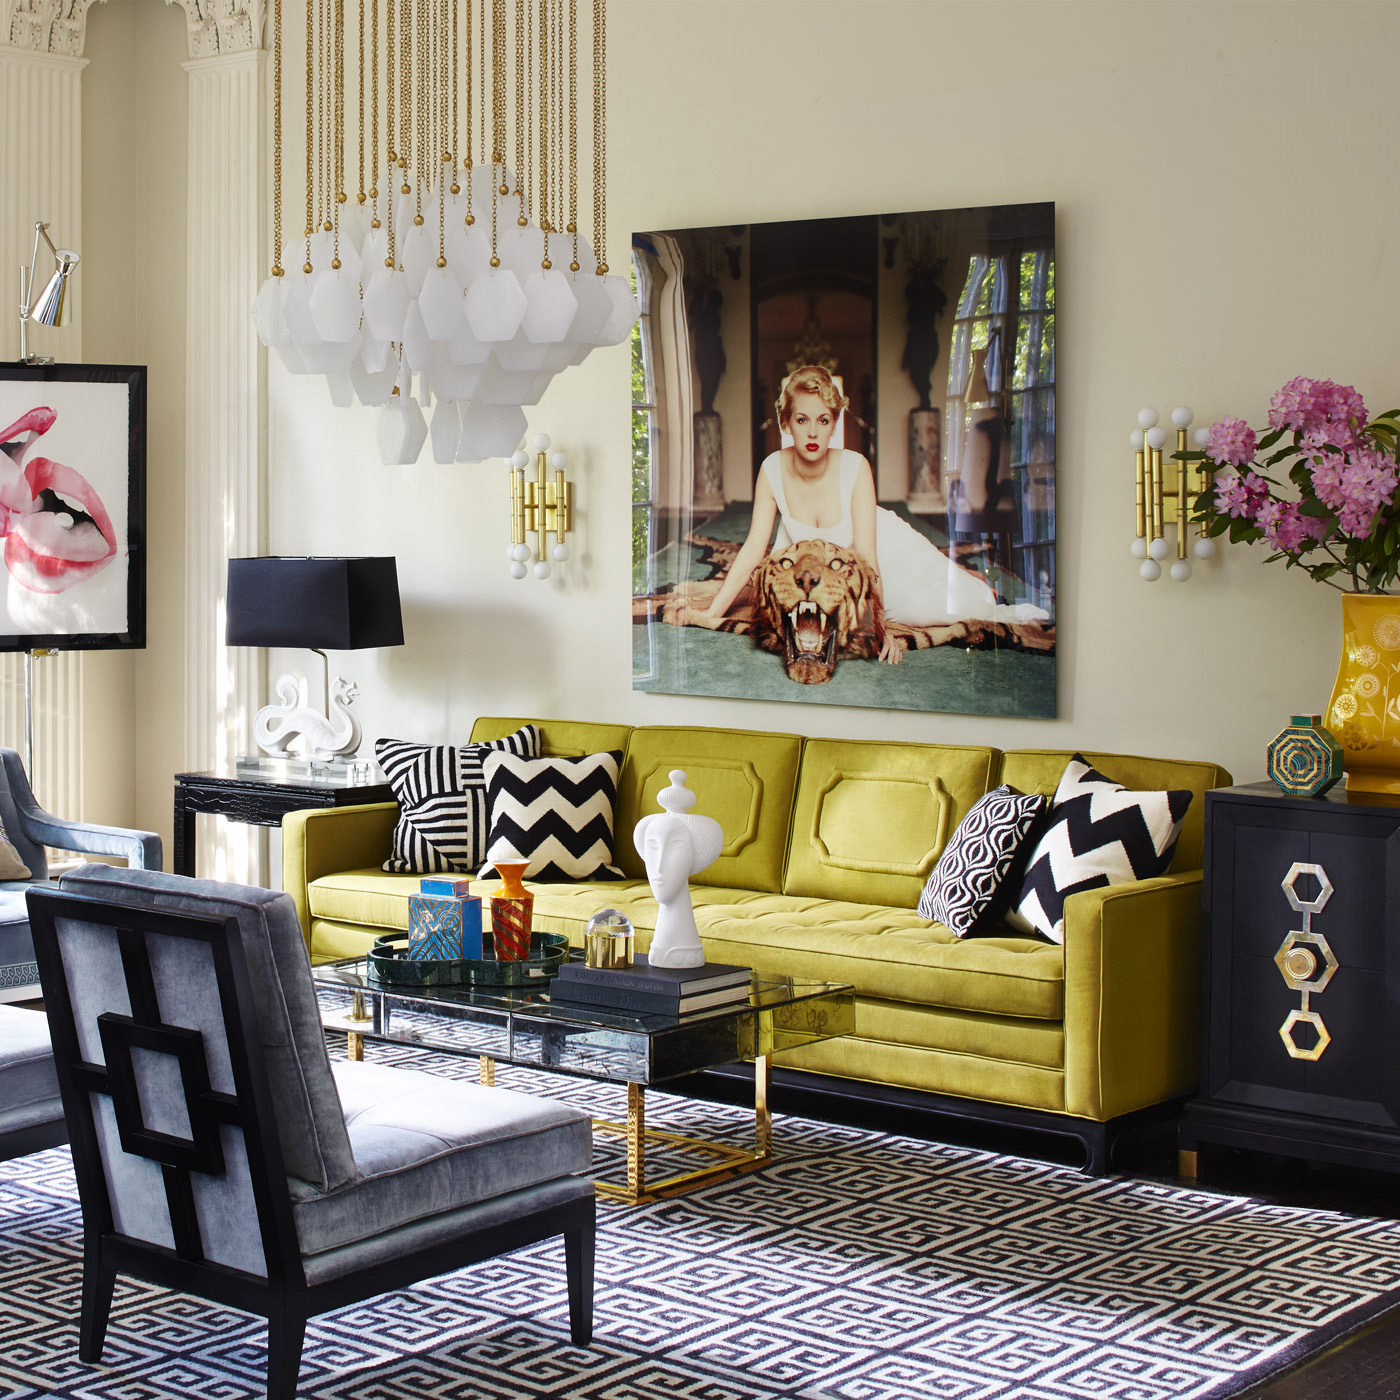 How to Get the Hollywood Regency Style - Vinterior